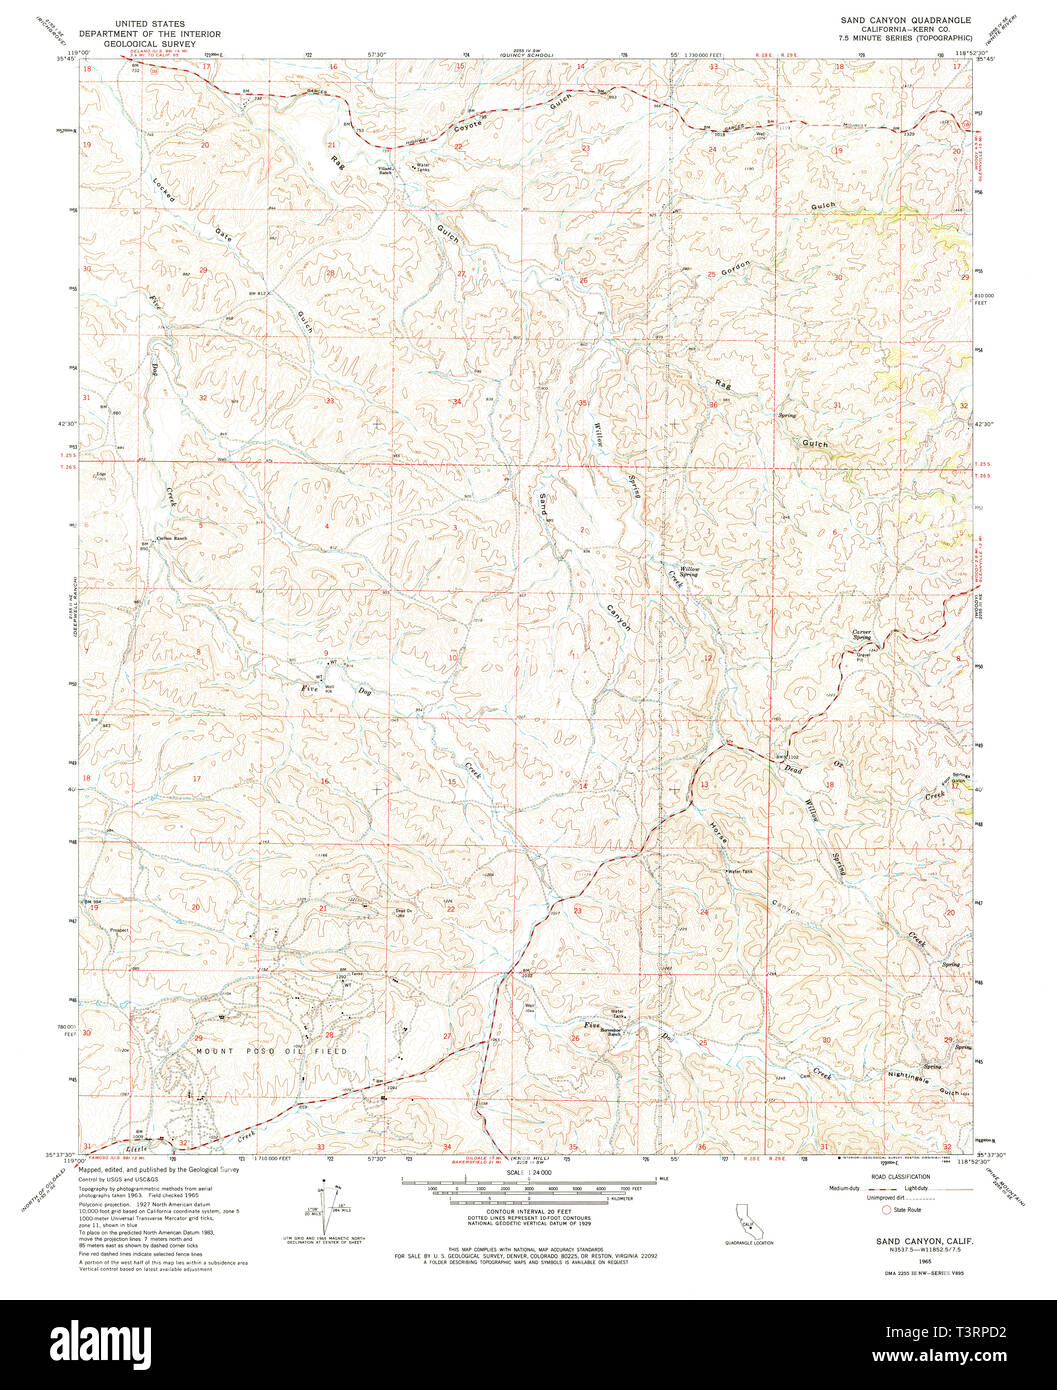 USGS TOPO Map California CA Sand Canyon 295061 1965 24000 ... Interstate Map on interstate 30 map, interstate map of mississippi and alabama, interstate 85 map, lincoln way map, new jersey route 1 map, interstate highway map, interstate 526 map, interstate 75 map, interstate 70 map, interstate 27 map, us highway 78 map, interstate 80 map, interstate 25 map, interstate 10 map, interstate 422 map, interstate 26 map, interstate 44 map, interstate 74 map,